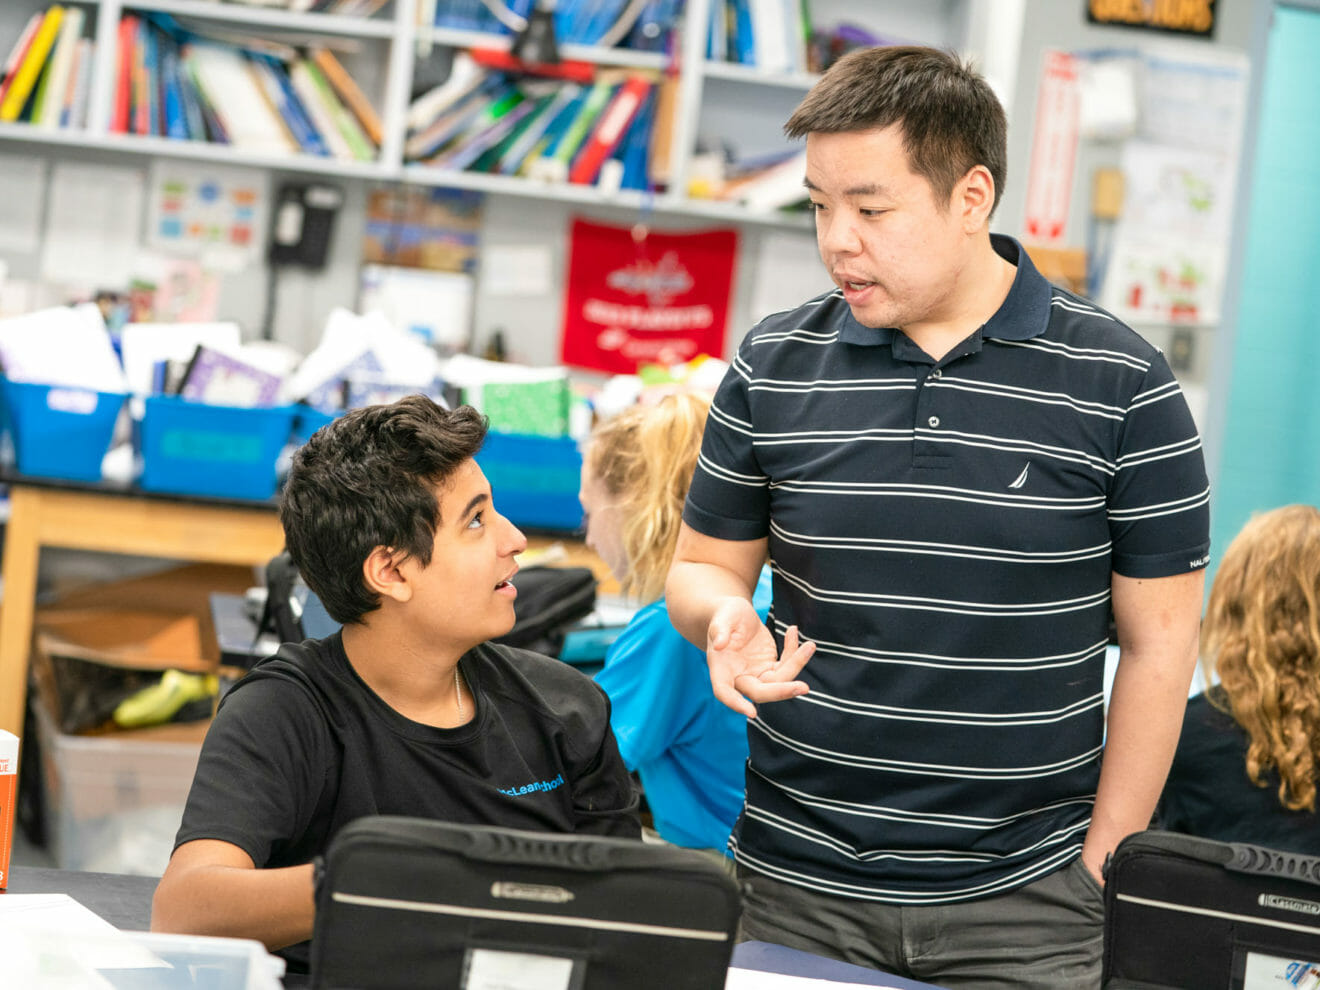 Student consults with teacher during class